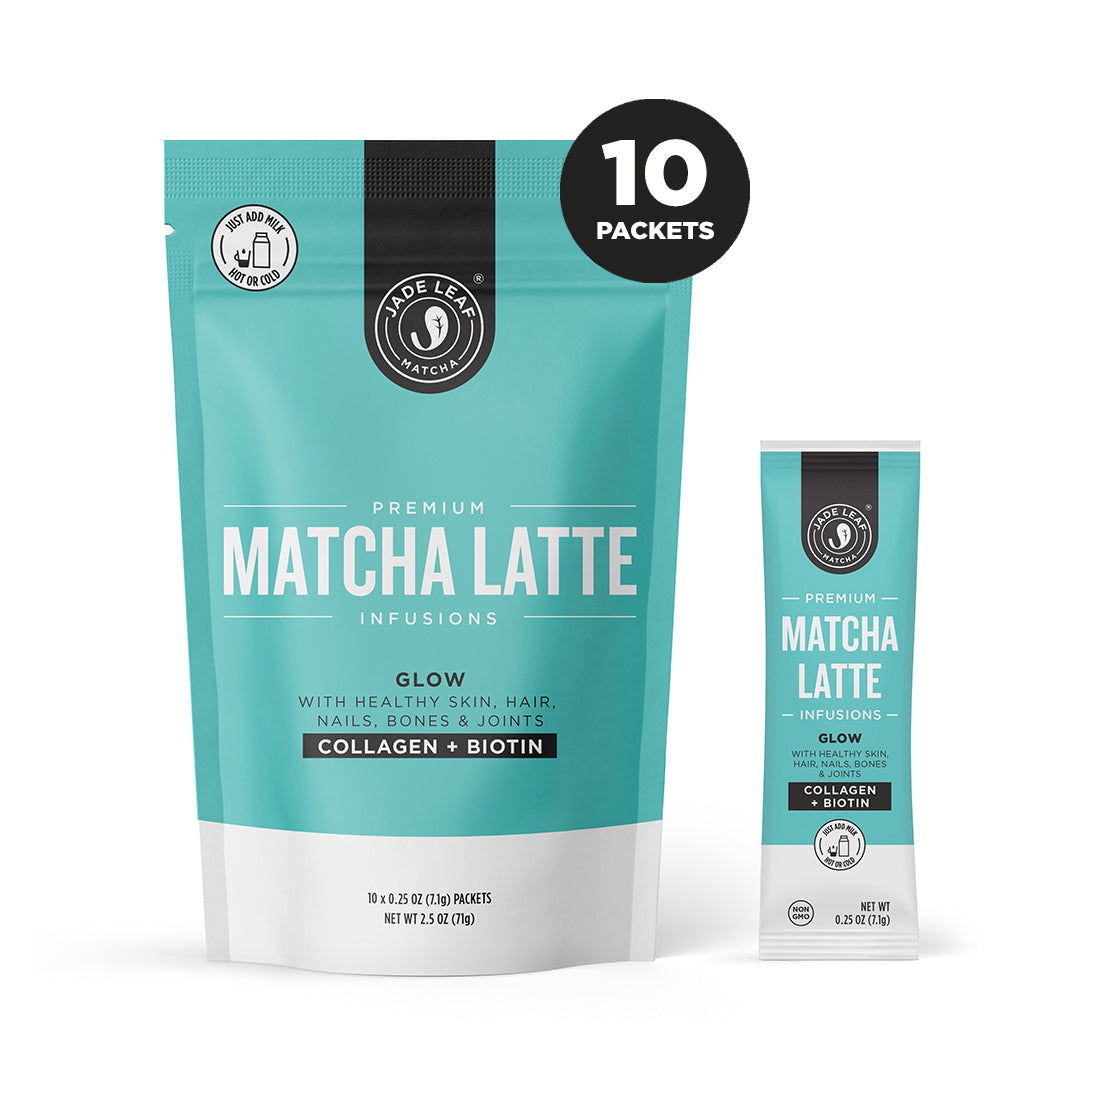 Matcha Latte Infusions - GLOW - 10 PACKETS - Hero